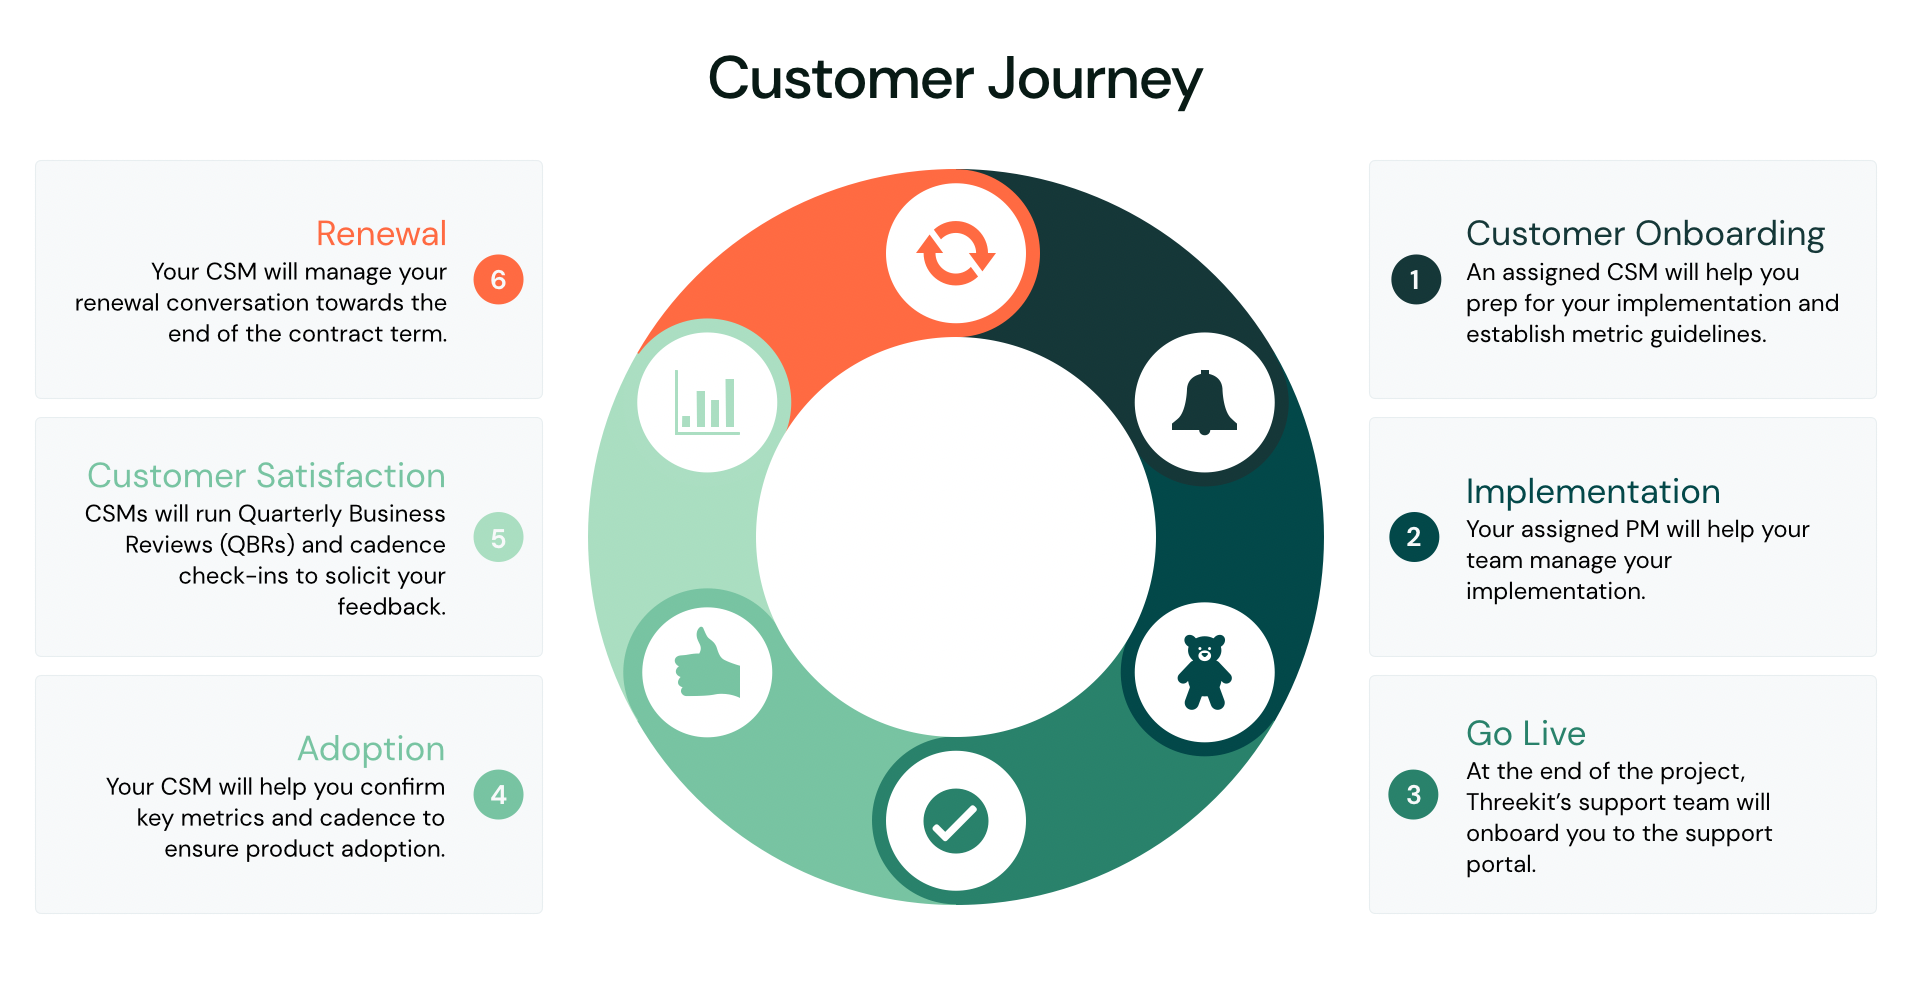 Customer Journey v2